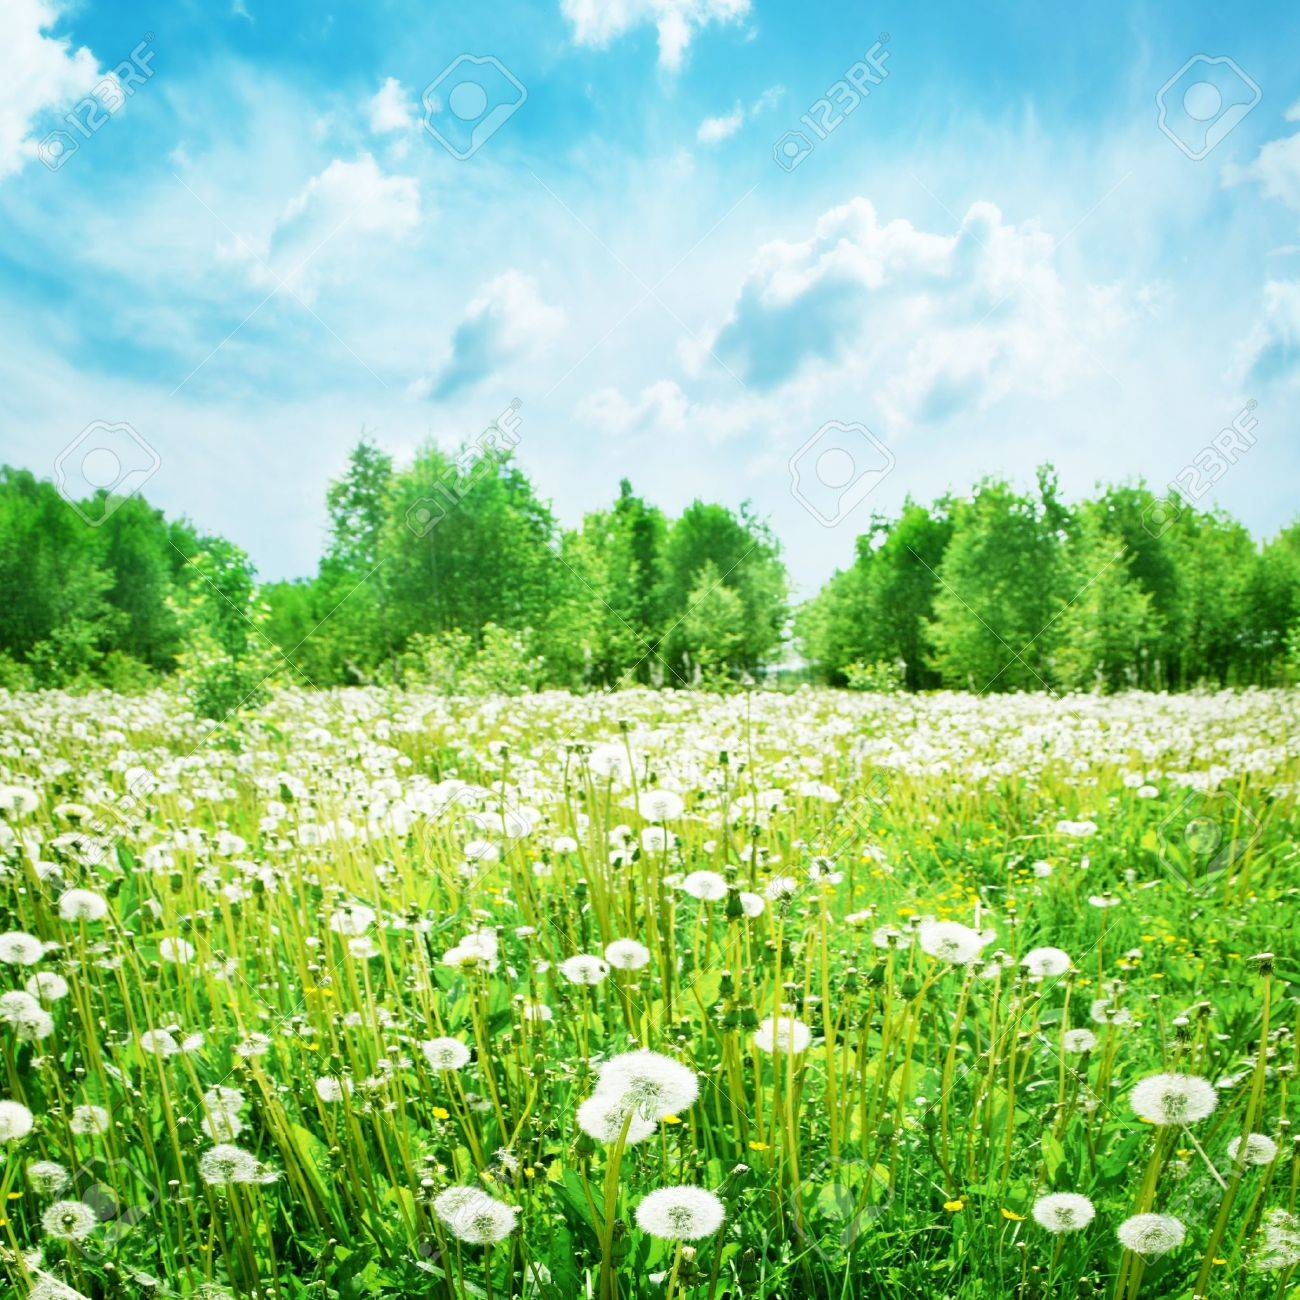 Summer landscape with dandelion field and blue sky Stock Photo - 13411728